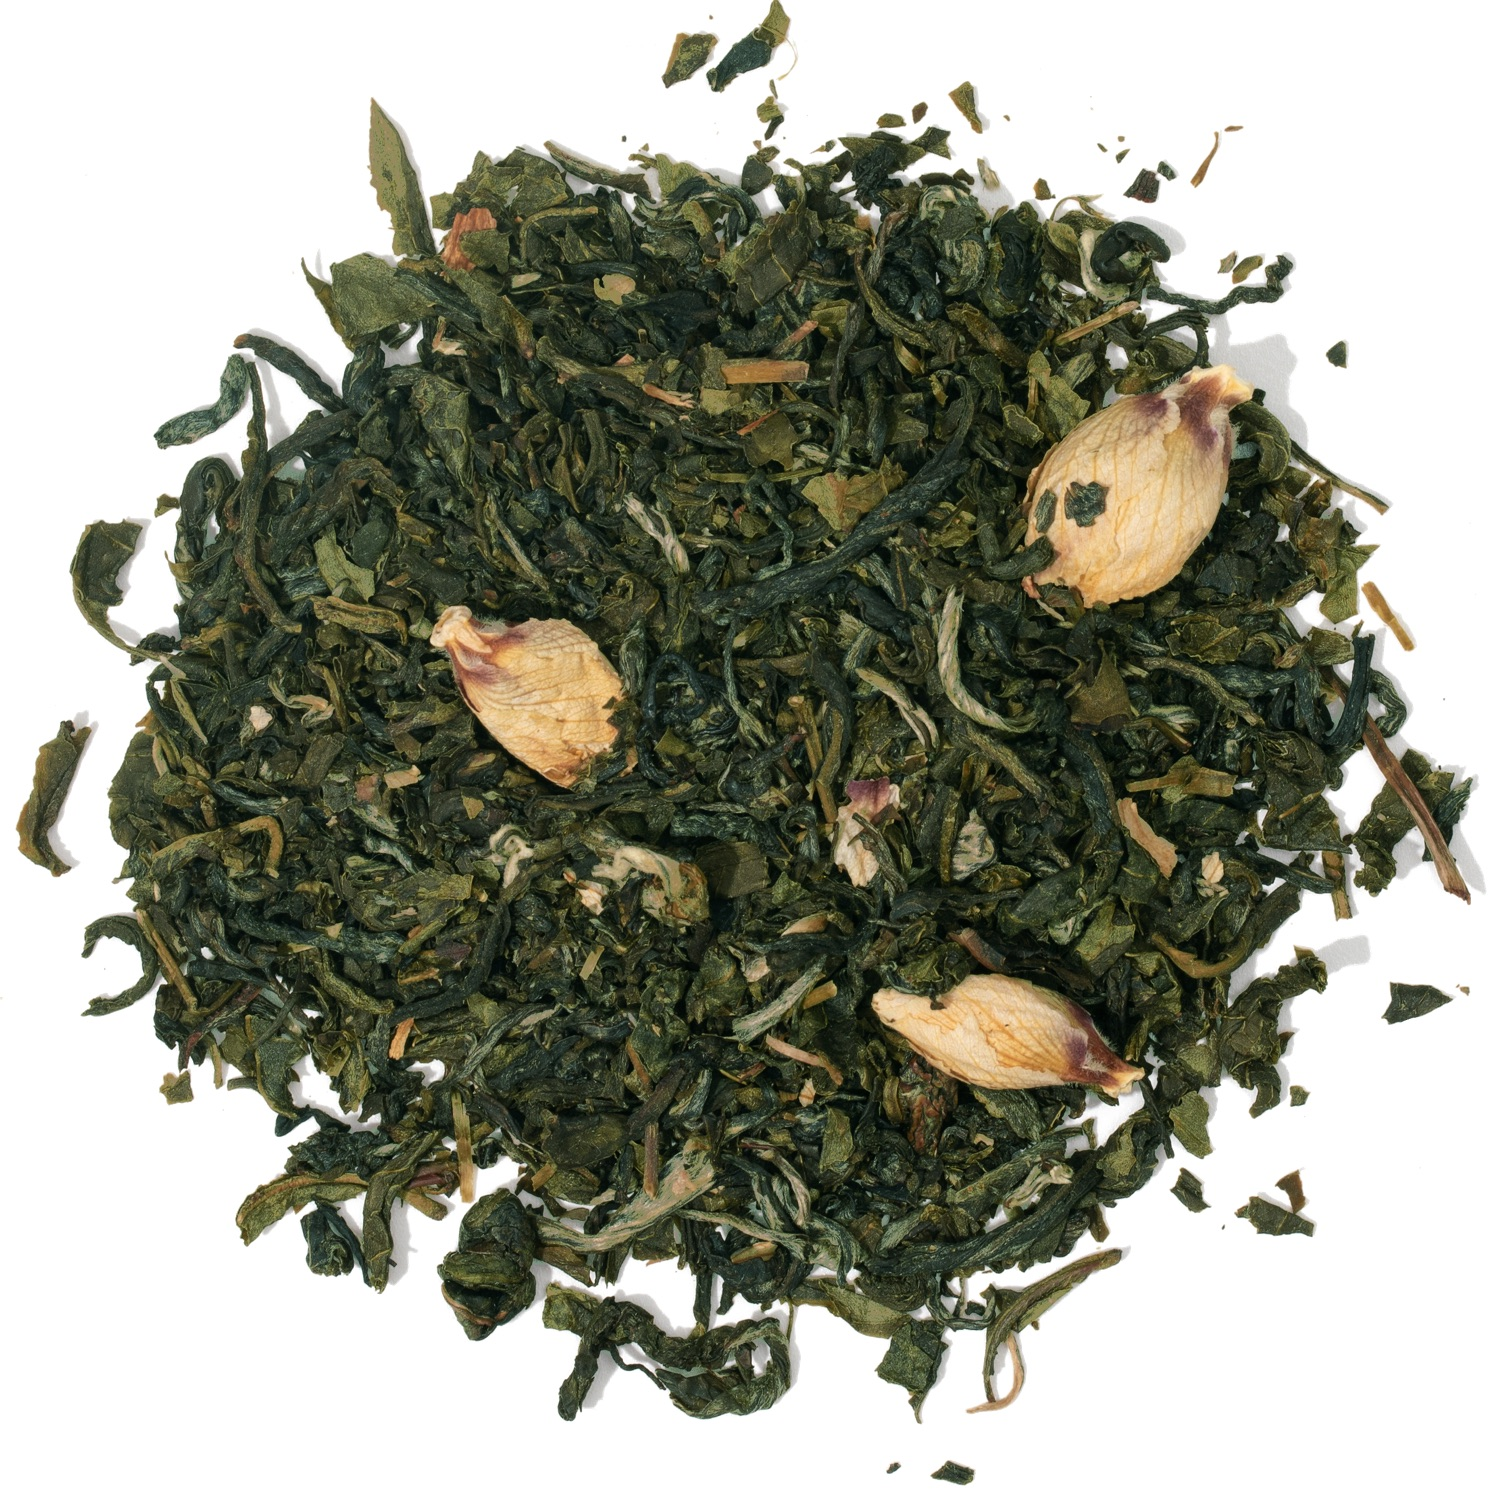 Splash of loose leaf white tea.